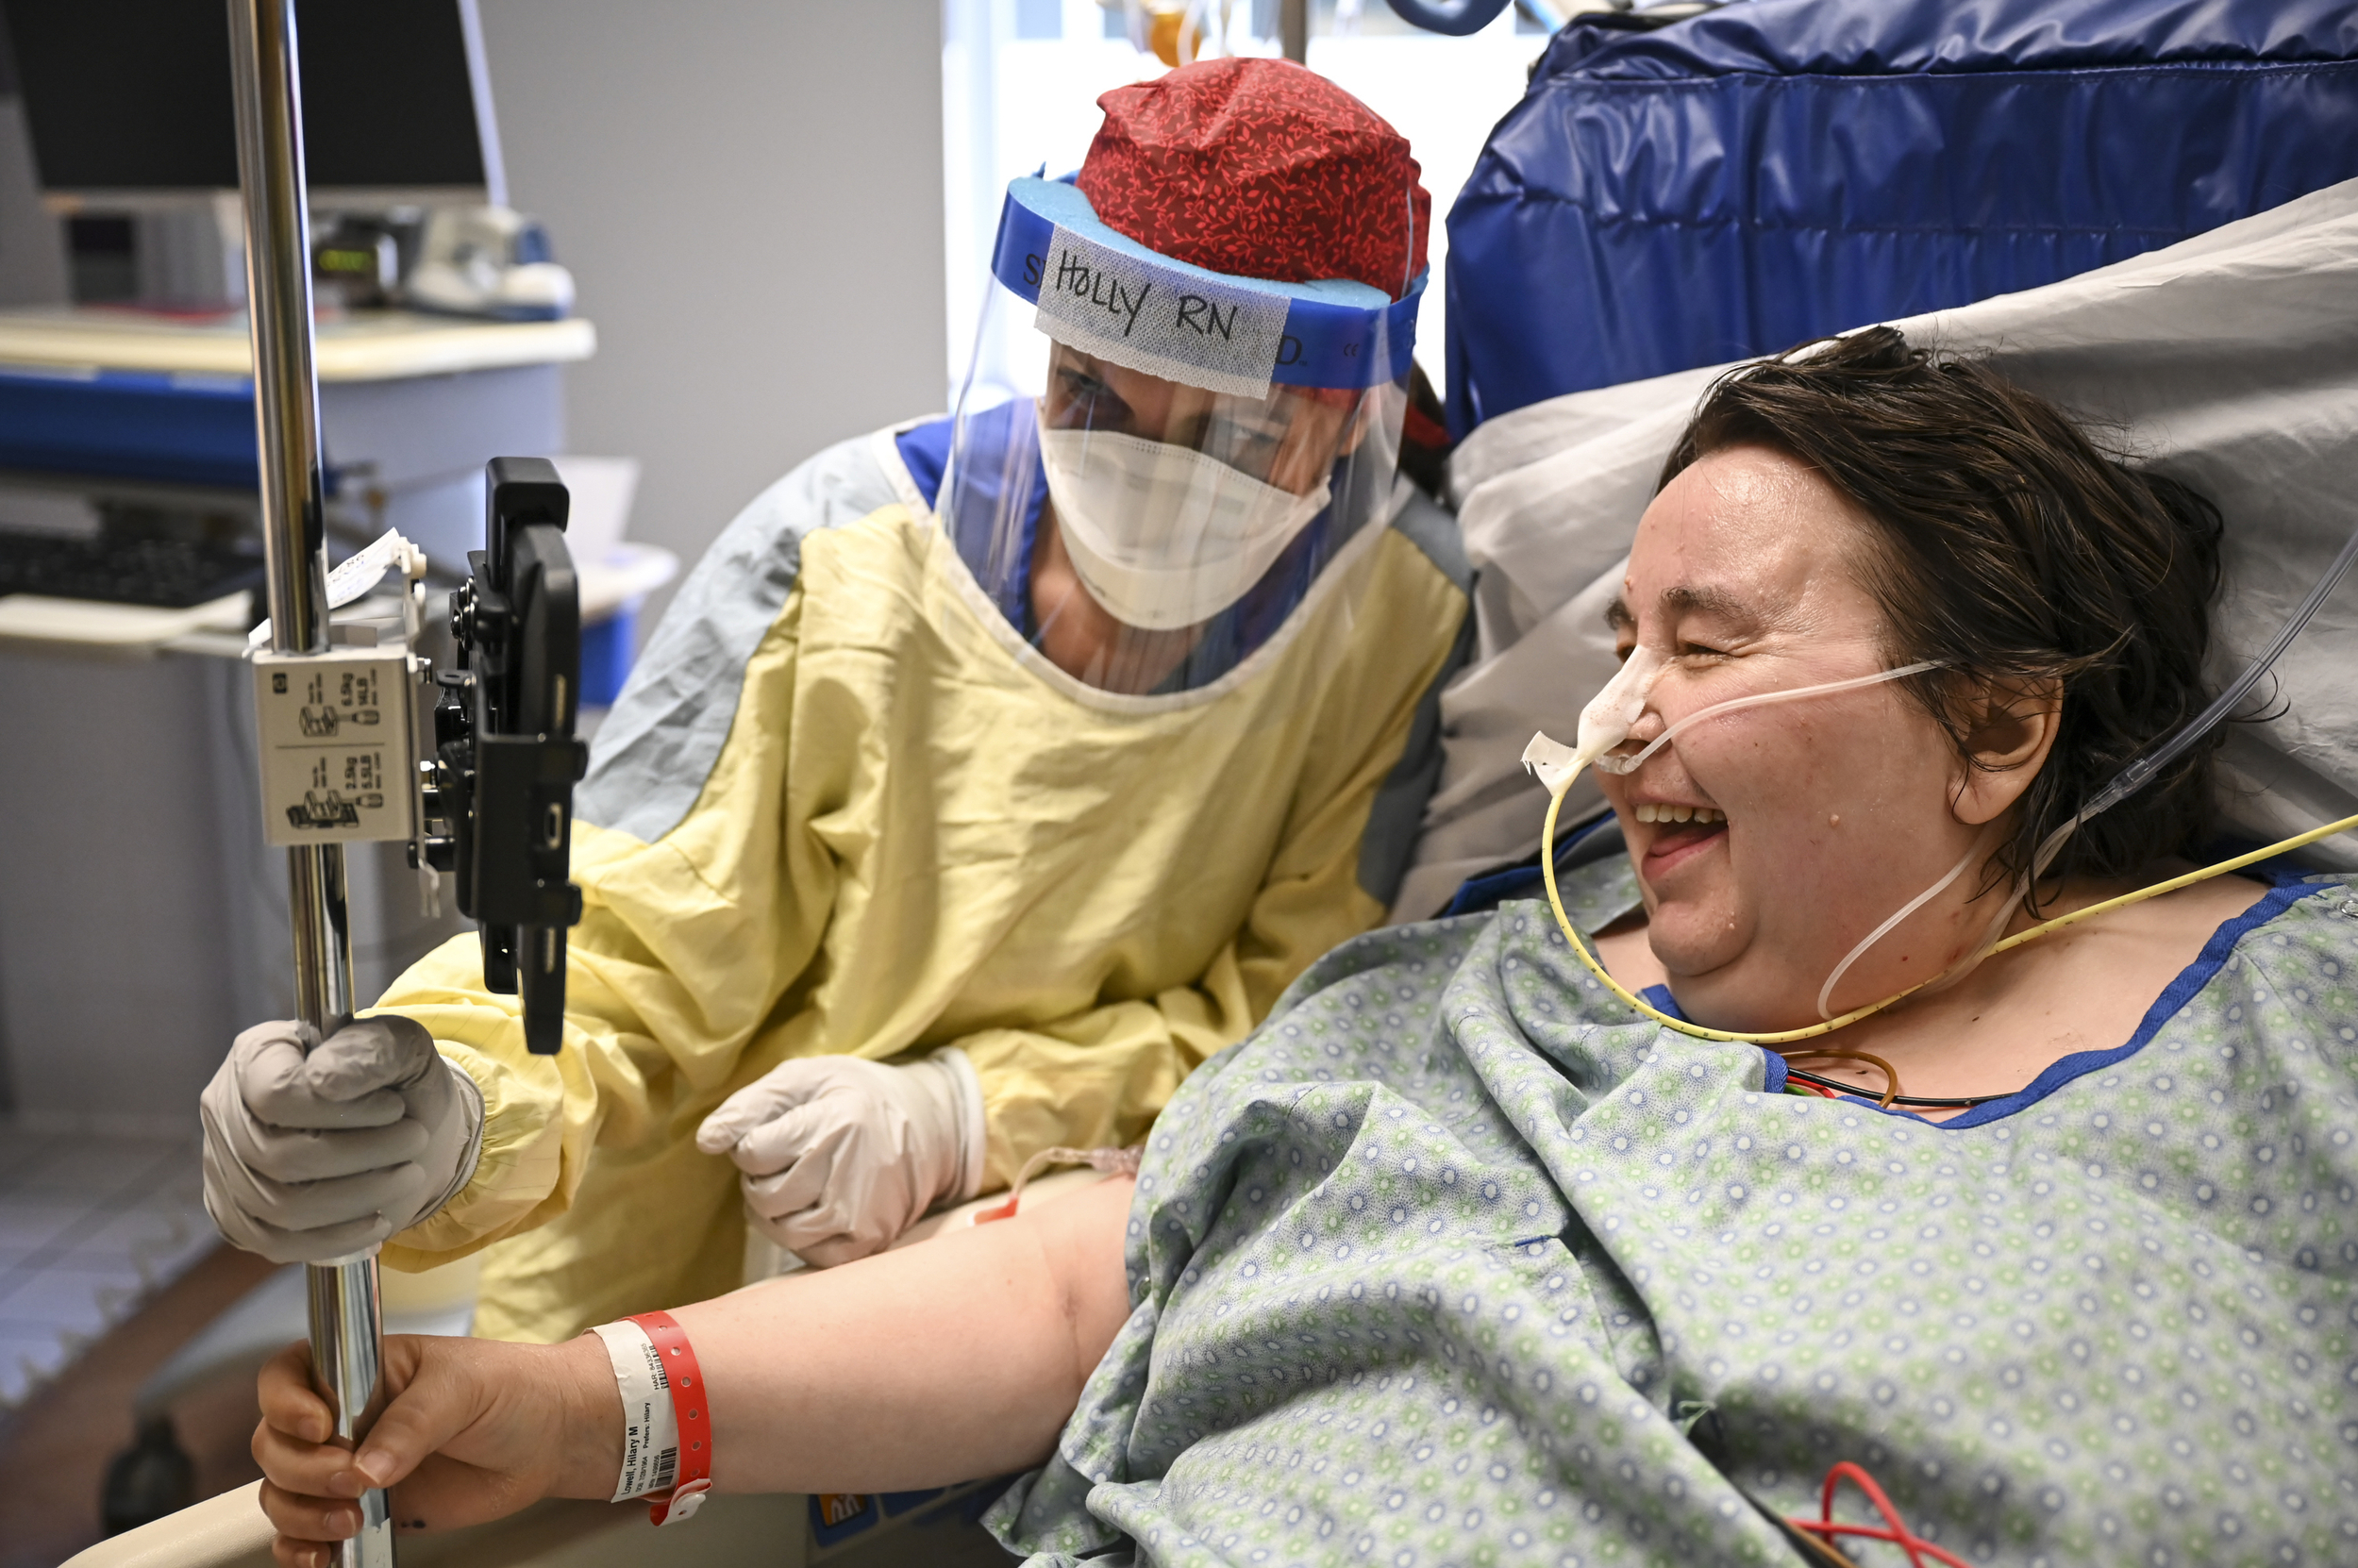 Holly Vilione, a critical care nurse with North Memorial, helped facilitate a a Zoom call with the family of Hillary Lowell, a COVID-19 patient who was extubated Thanksgiving morning in the South Seven ICU.